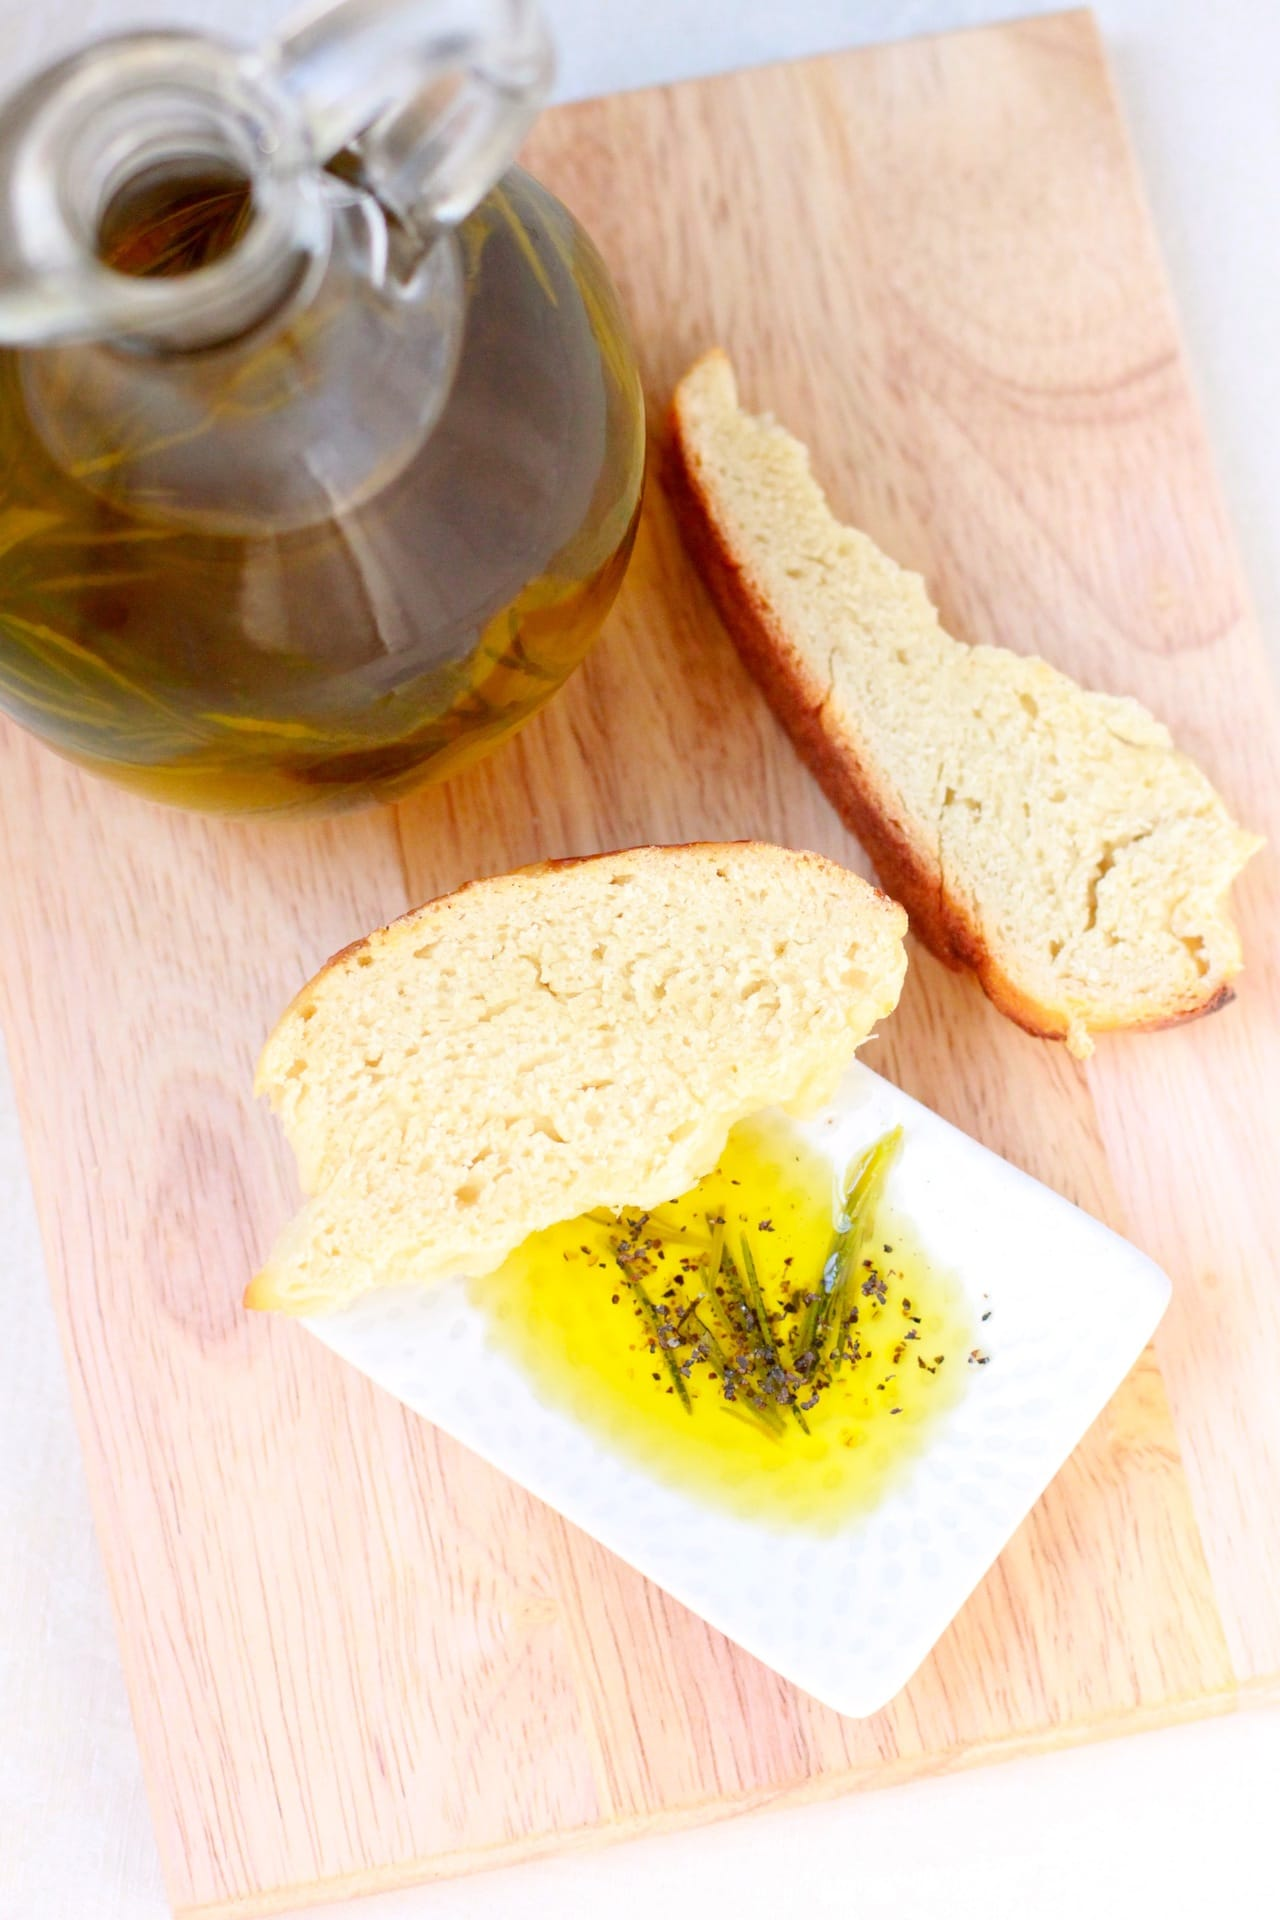 Rosemary and Garlic Infused Olive Oil | Playful Cooking